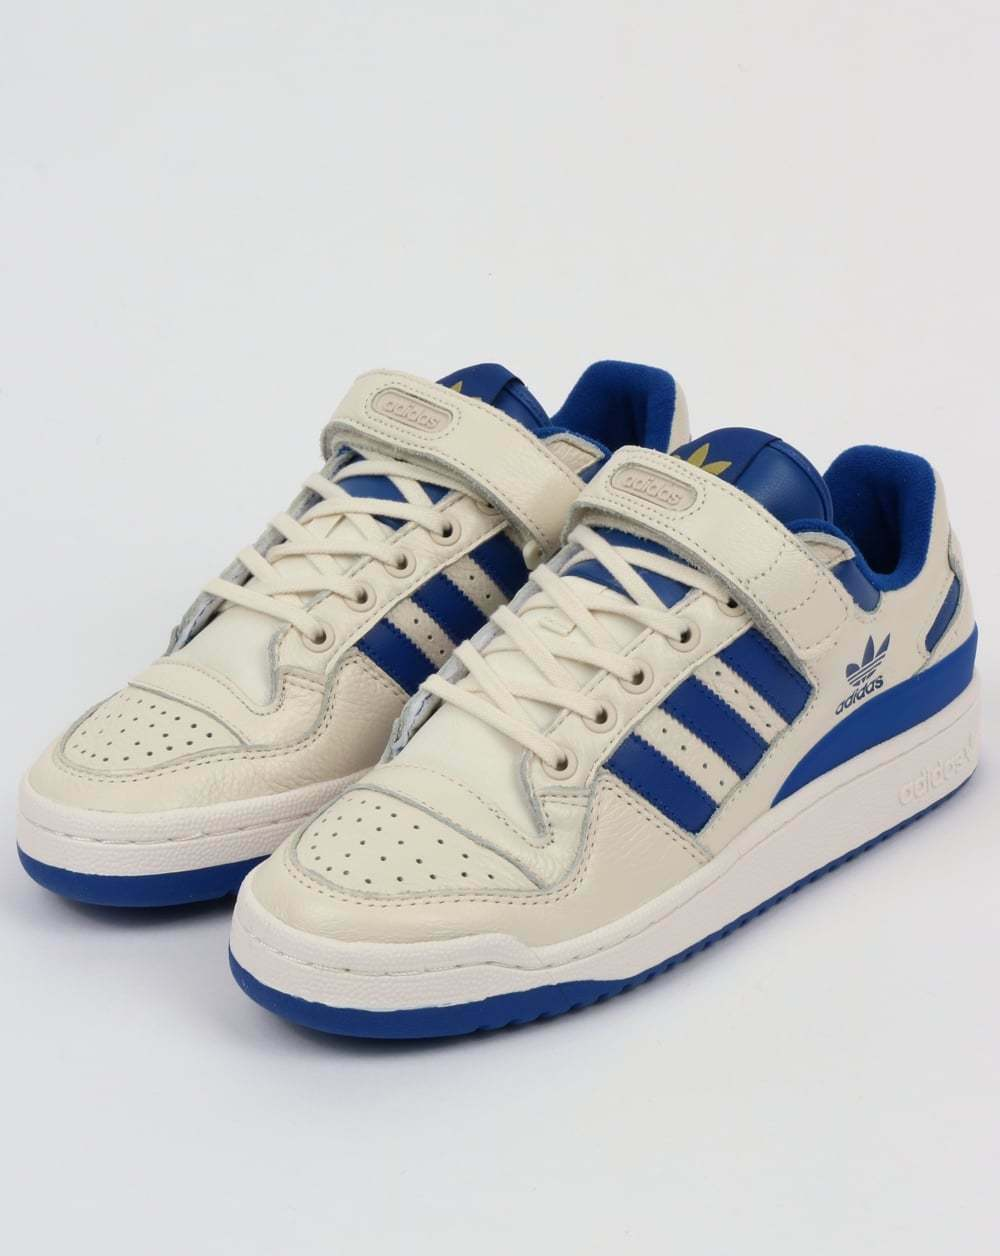 adidas homme  snova riot 3 gore-tex new running trail Chaussure trainer new gore-tex g50156  8 - 12 56961d